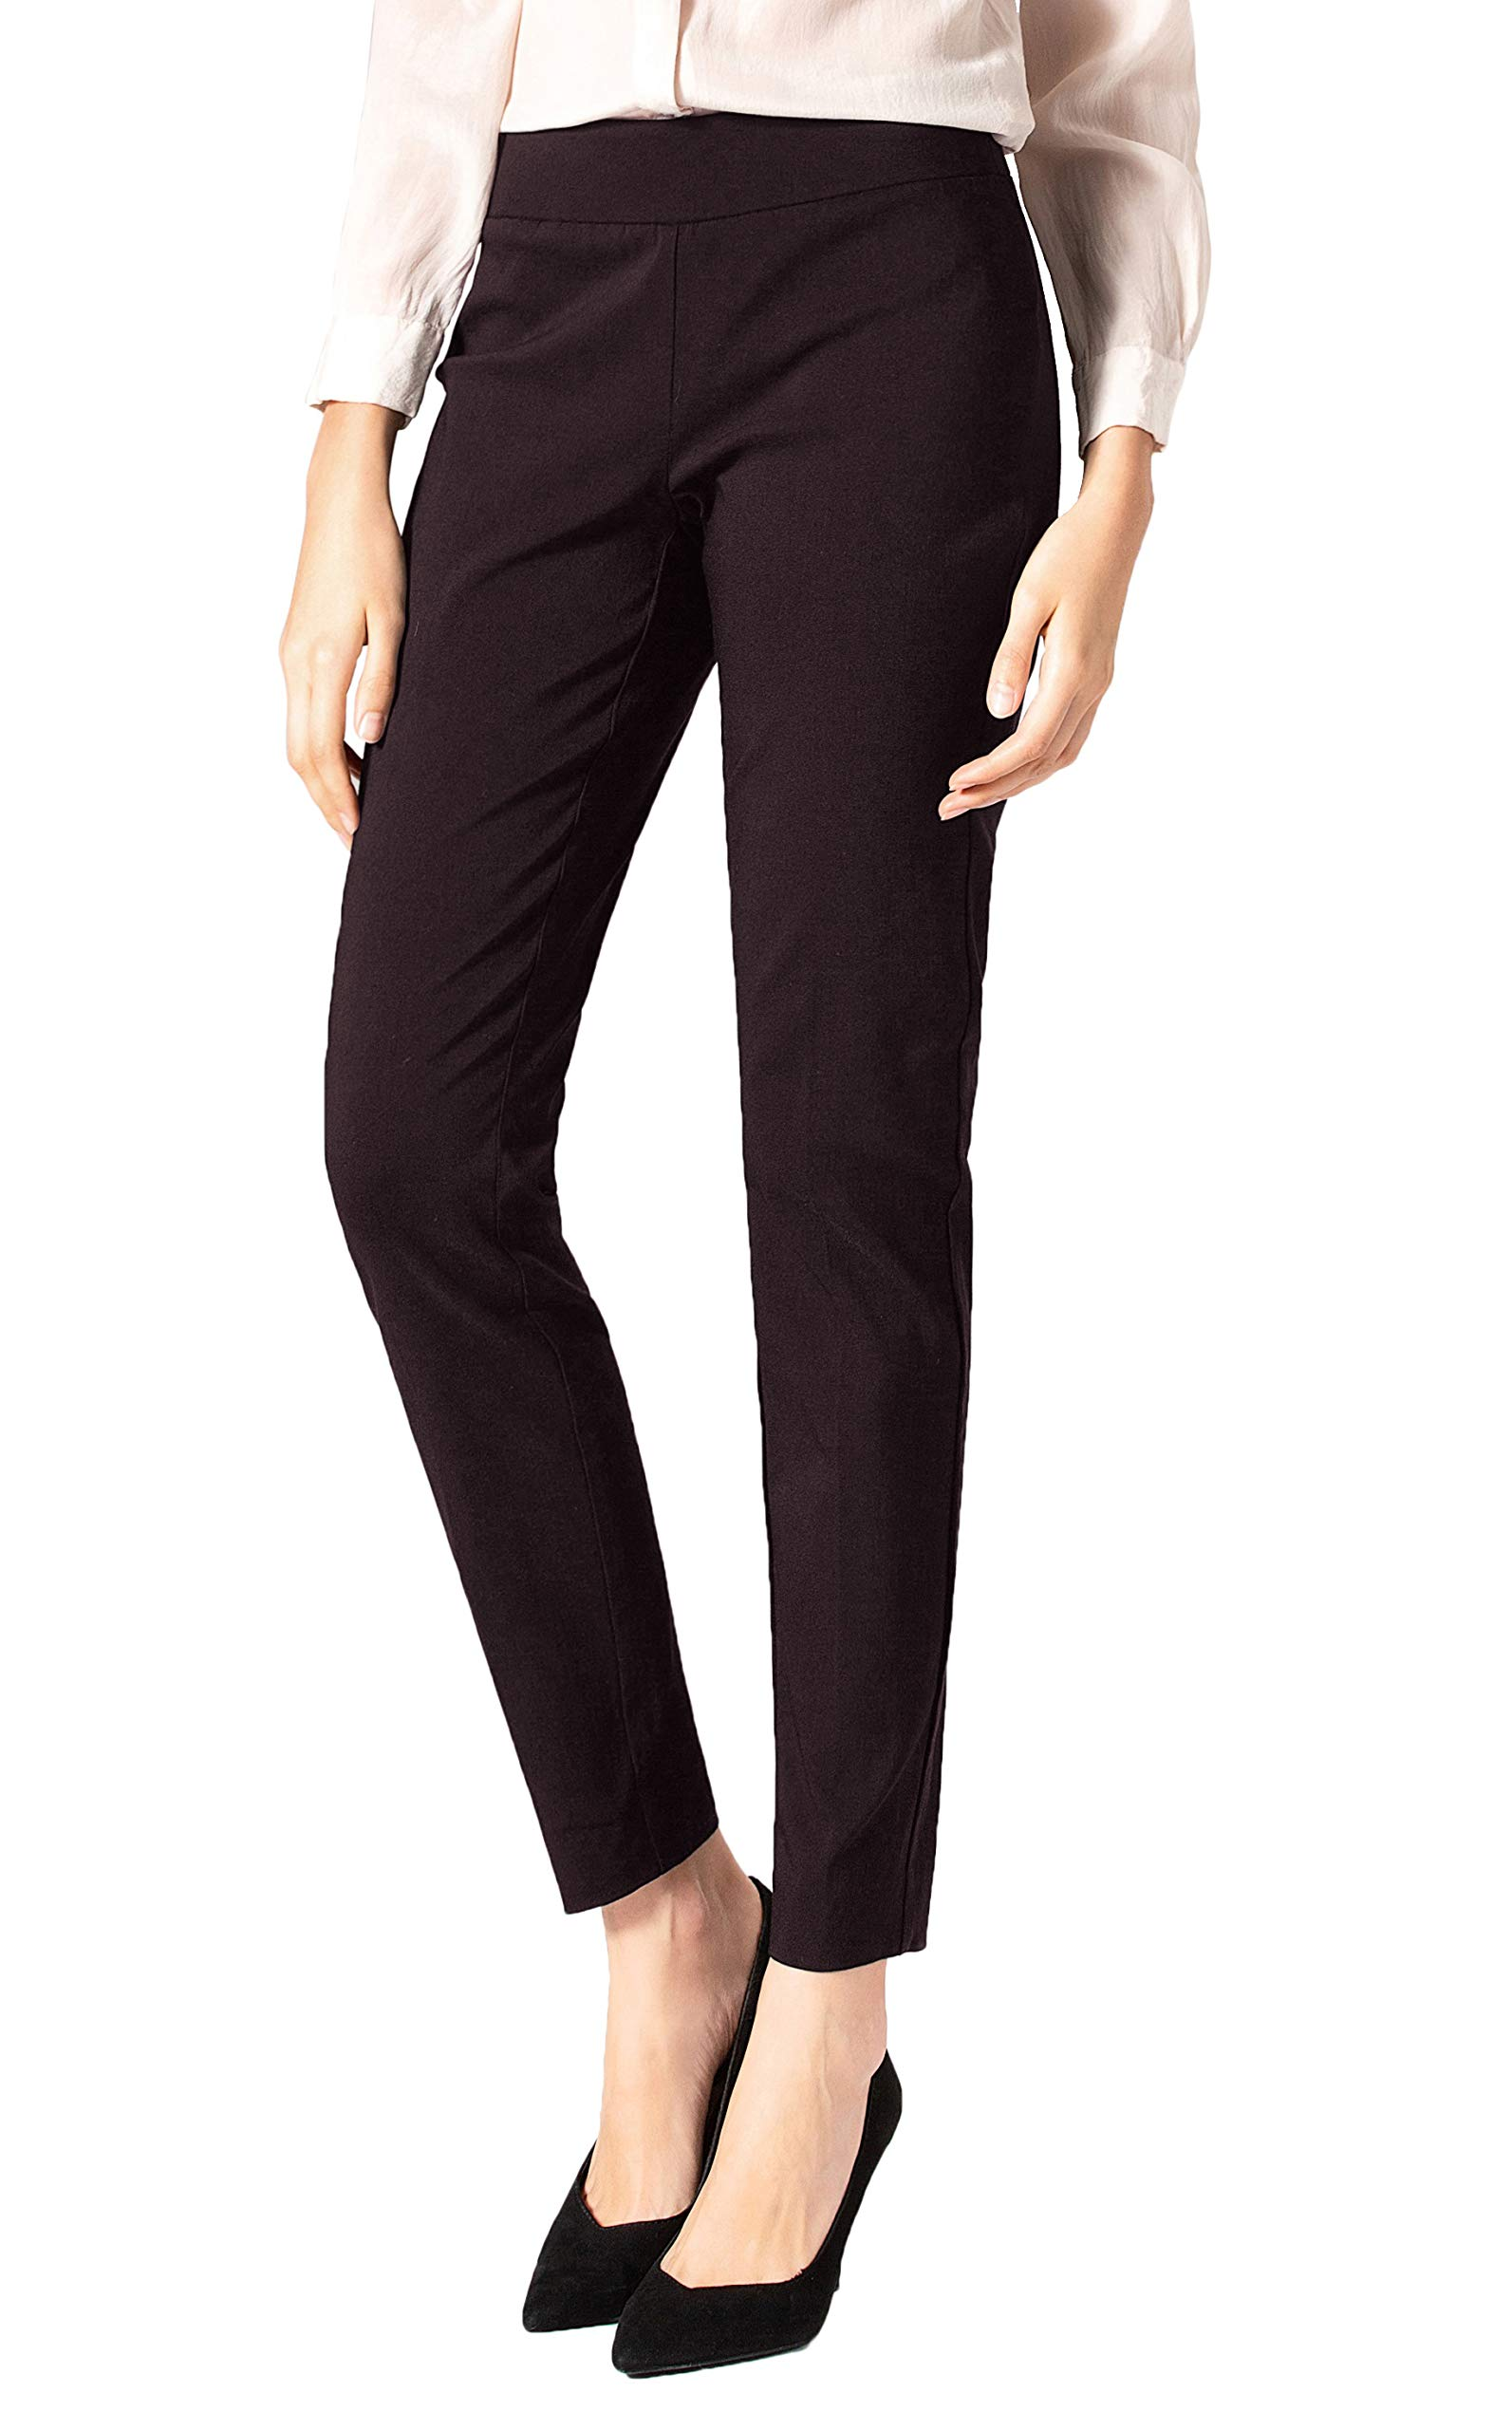 SATINATO Women's Straight Pants Stretch Slim Skinny Solid Trousers Casual Business Office (2, Zipper Free-Brown) by SATINATO